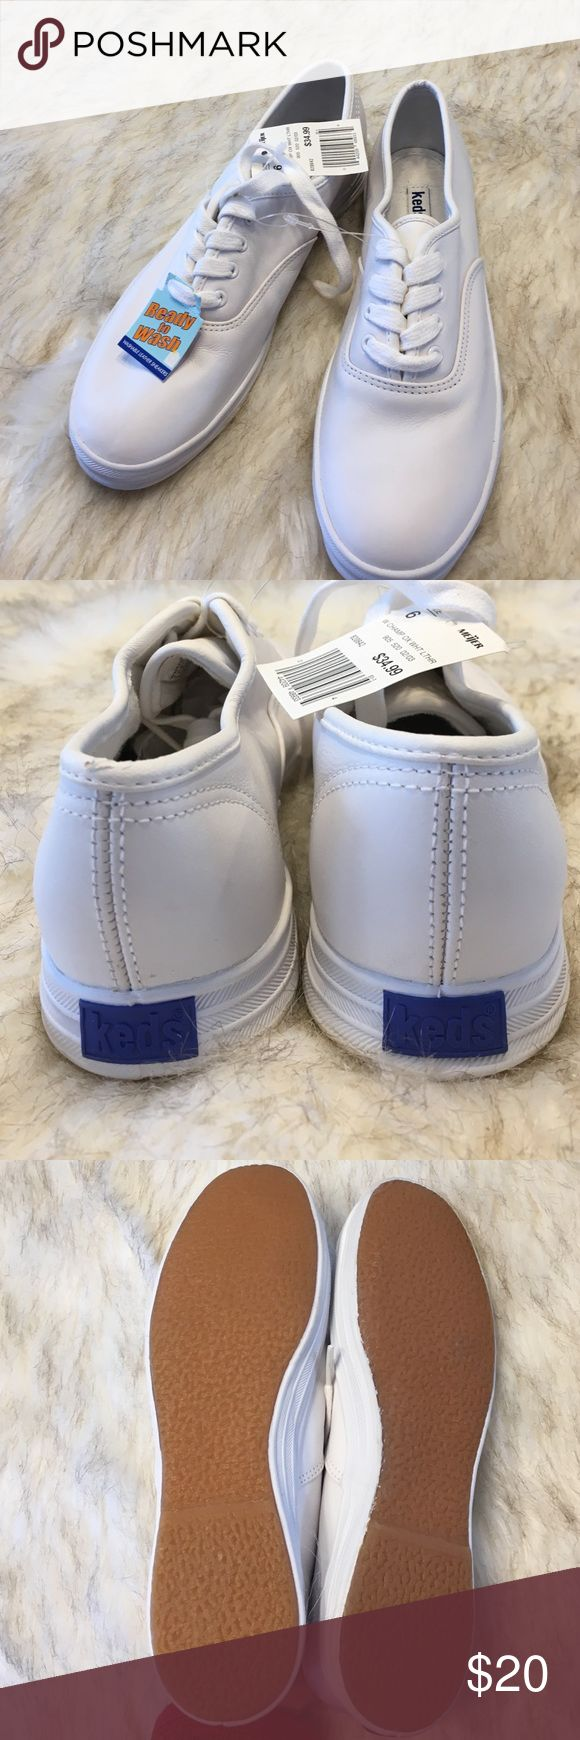 NWT White Leather Keds White washable leather Keds. New with tags. Keds Shoes Sneakers